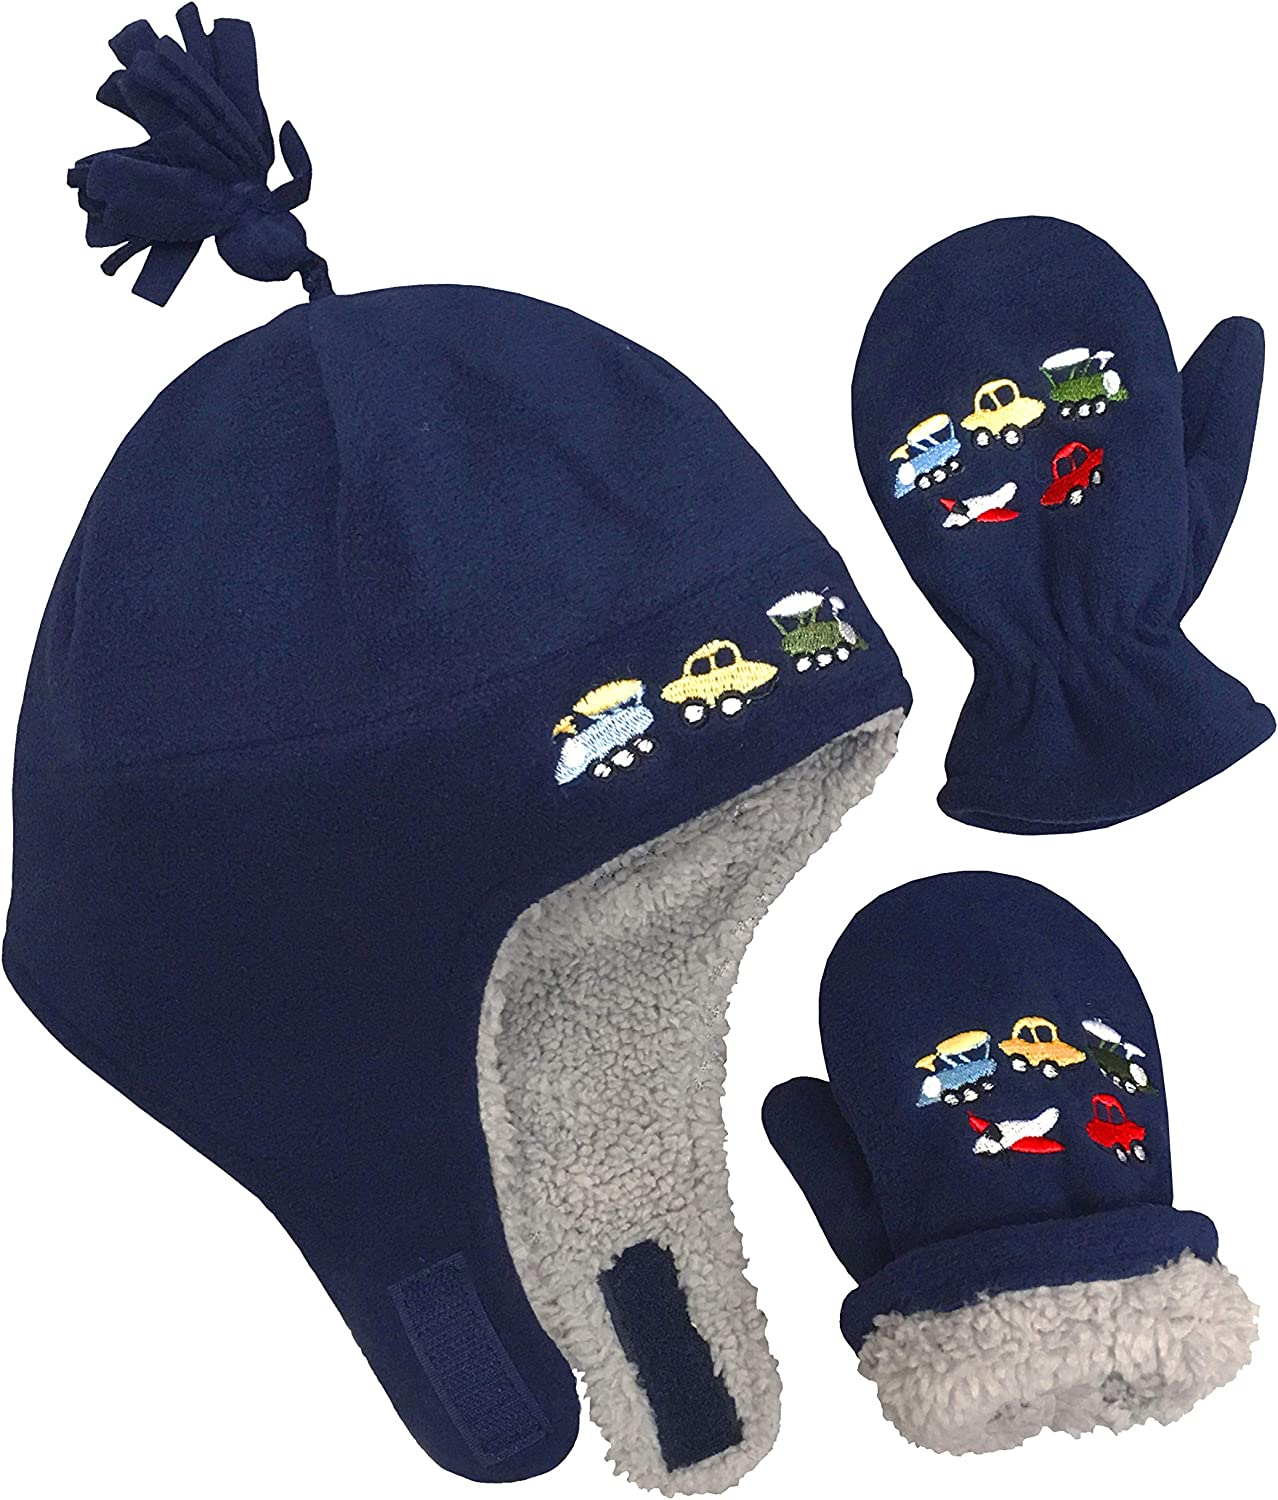 Dinos - Navy//Royal Infant, 3-9 Months NIce Caps Little Boys and Baby Sherpa Lined Fleece Embroidered Hat Mitten Set